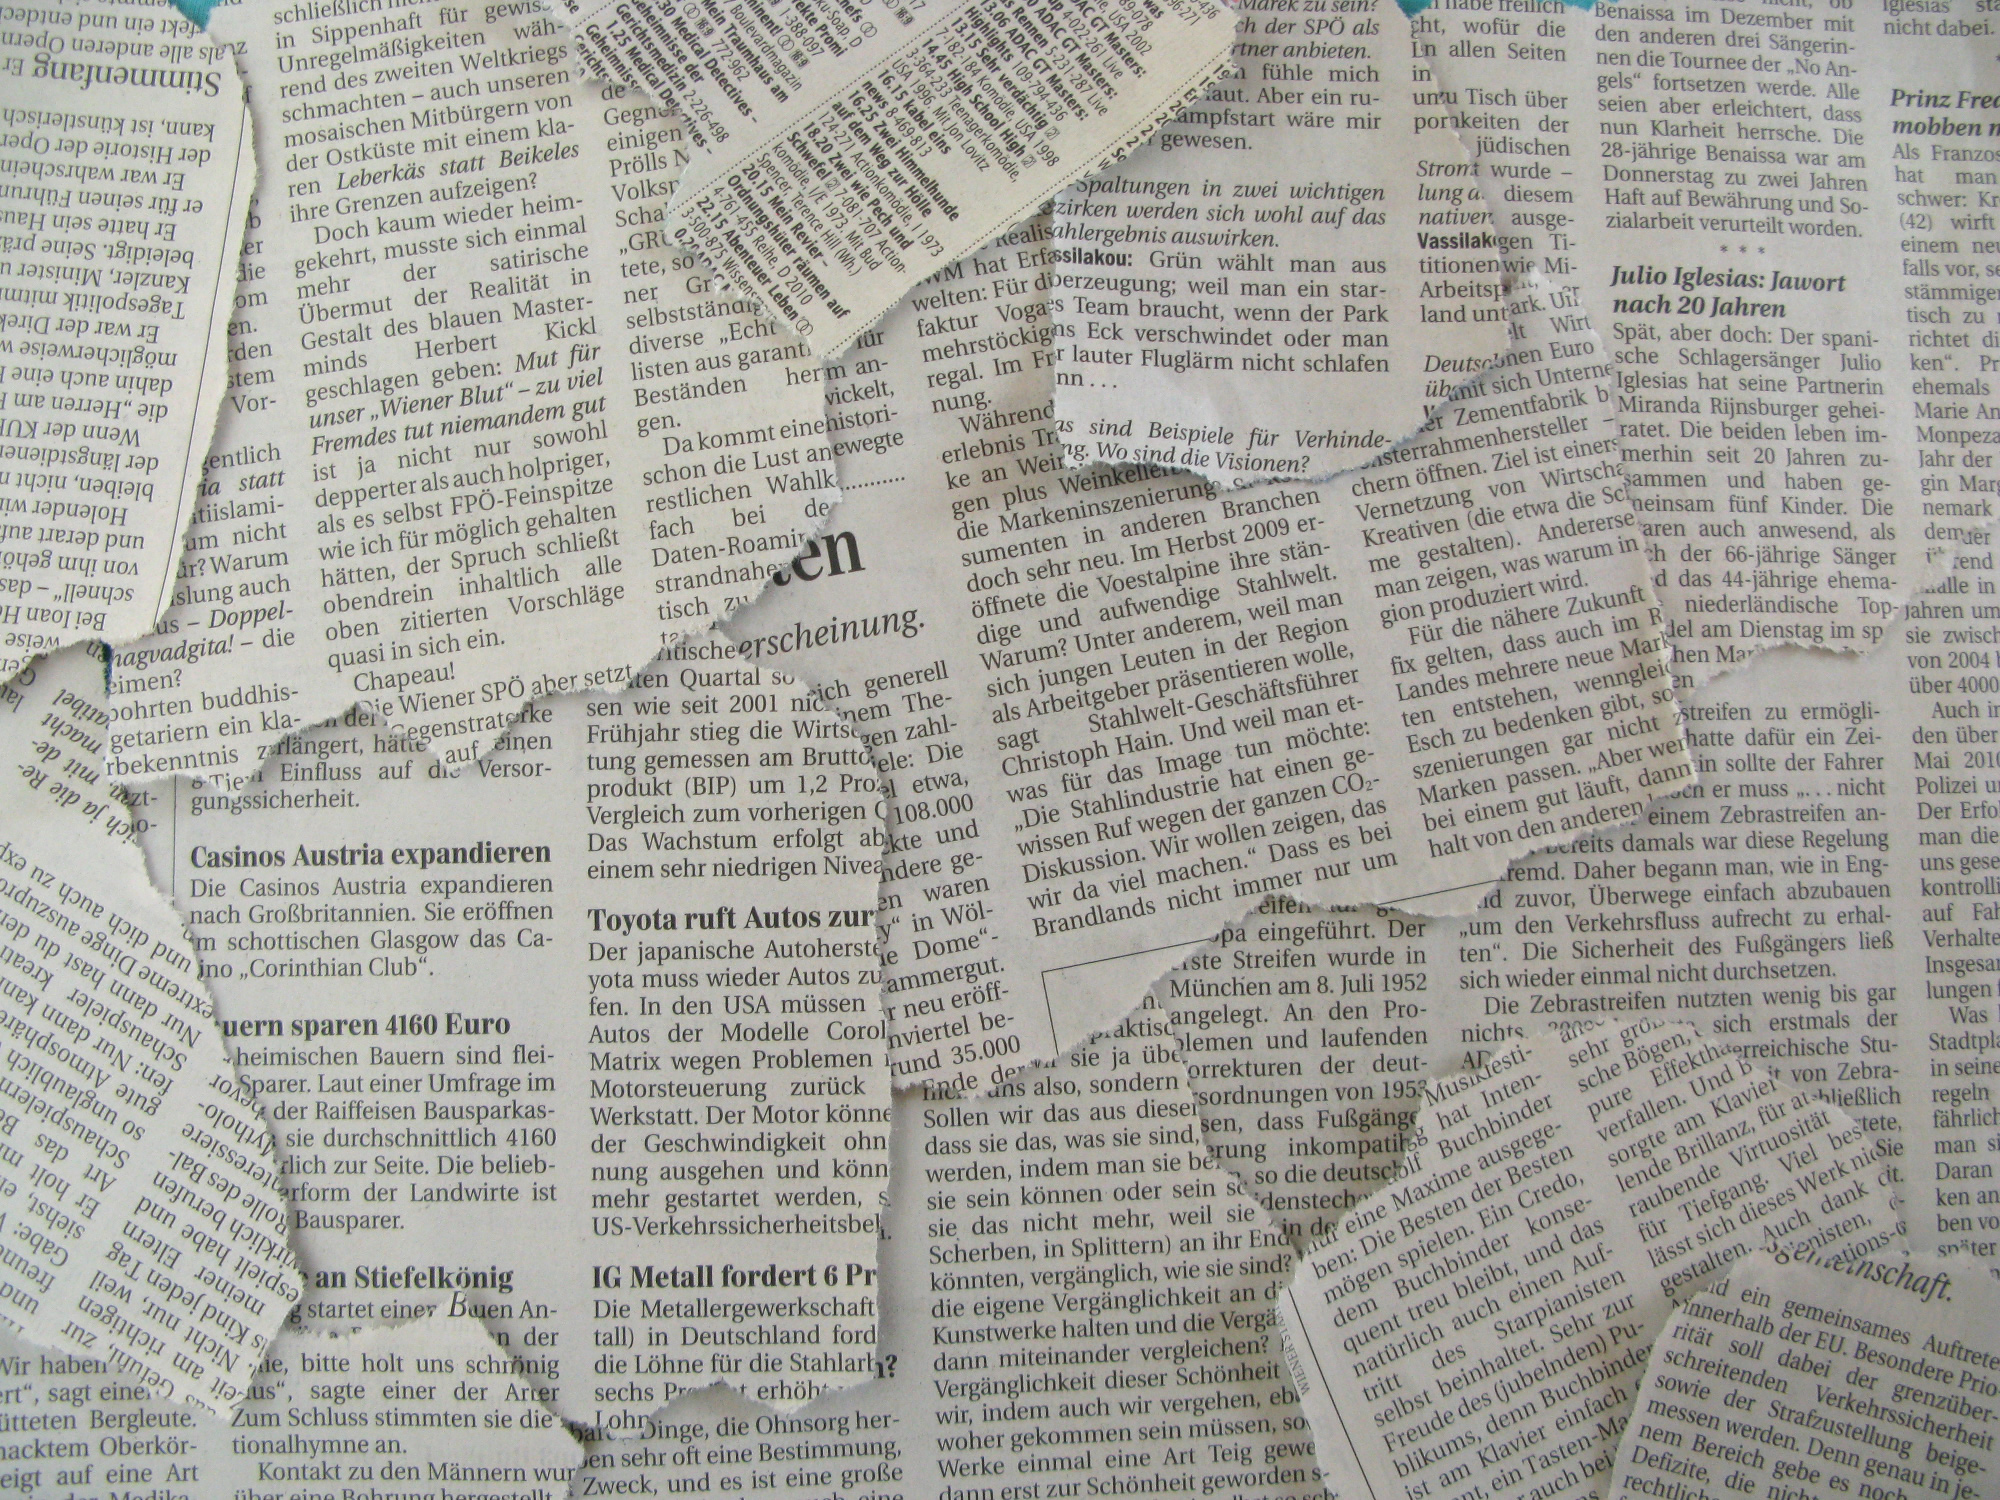 Newspapers newspaper texture background download photos 2000x1500